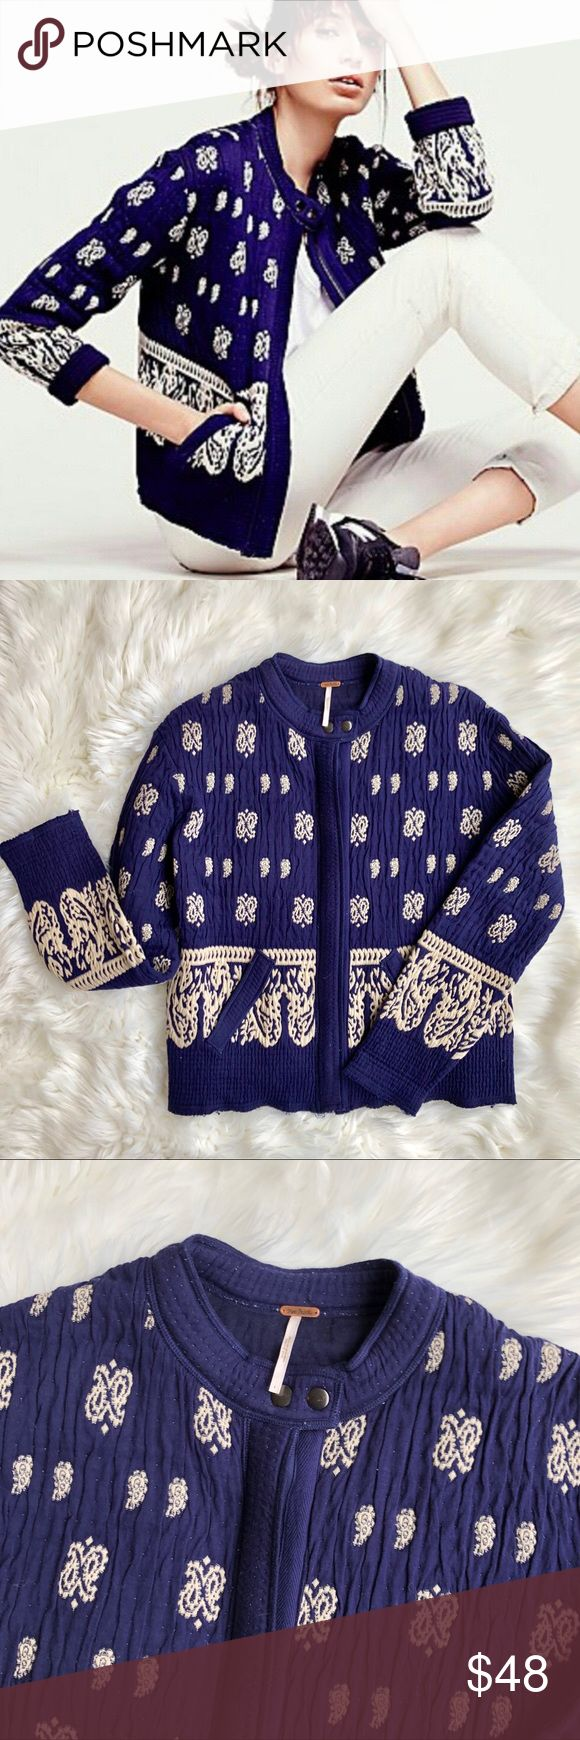 Free People Jacket 8 M Blue Embroidered Blazer • Brand:Free People  • Size:8 • Material: See picture of tag in photos • Previously owned, excellent used condition  • Length 25 Bust 21  • Other info: cute embroidered jacket! Thicker style. Zips up front  •Inventory id:767 Free People Jackets & Coats Blazers